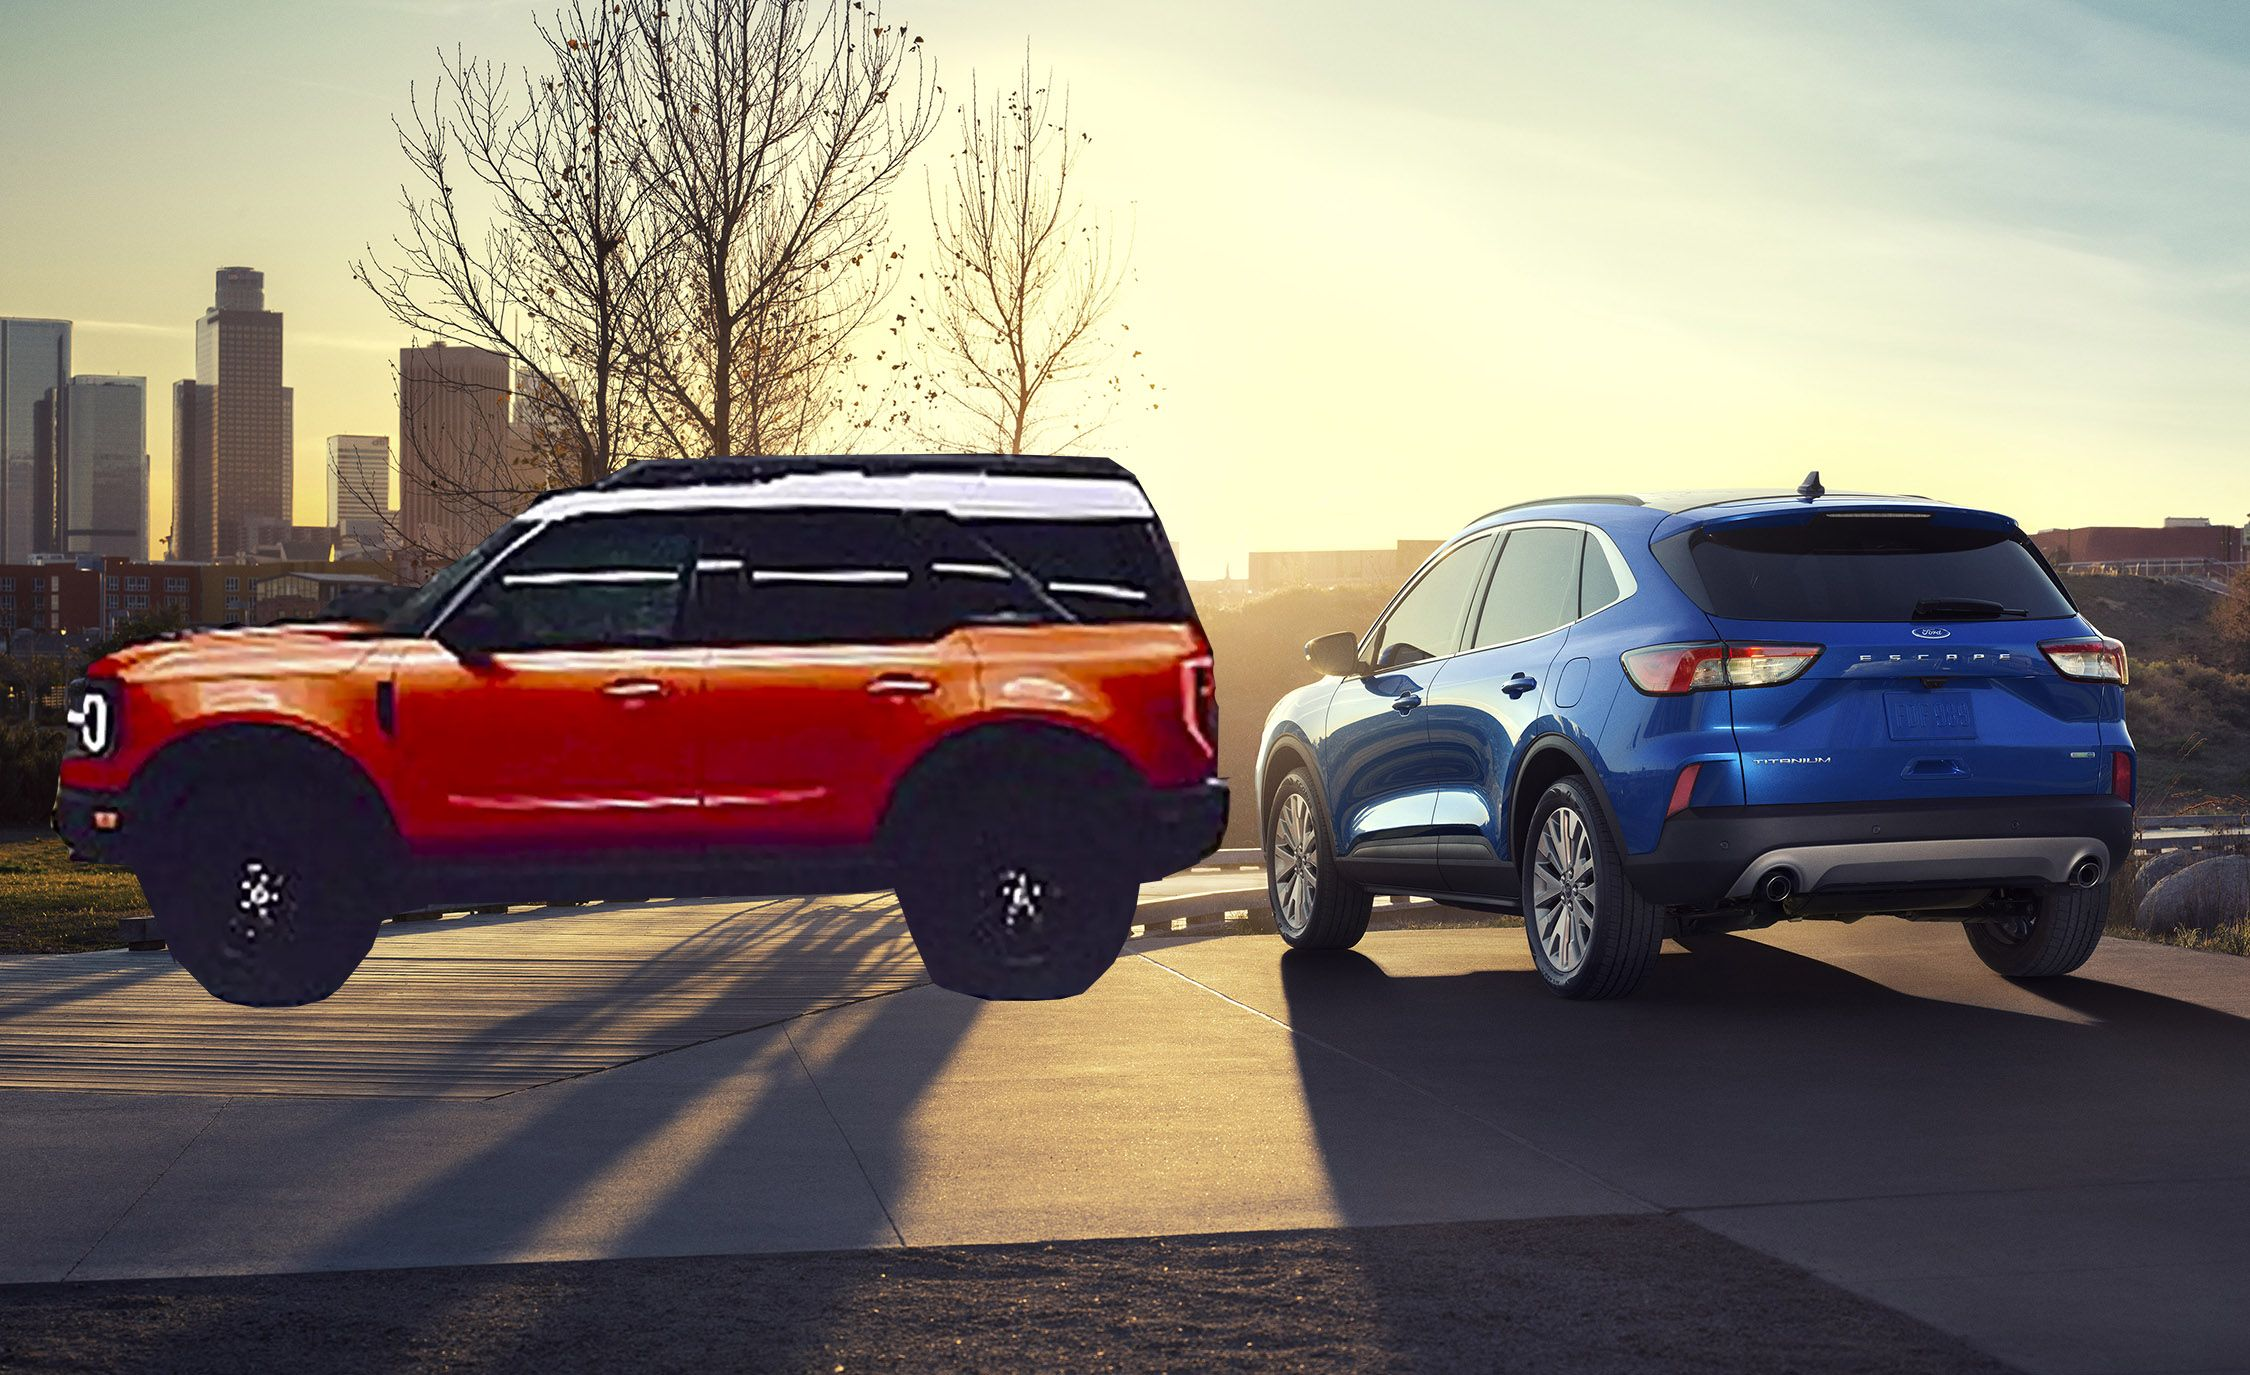 2020 Ford Escape Spy Photos, Pictures, Interior >> 2020 Ford Escape Crossover Design Baby Bronco Suv Coming